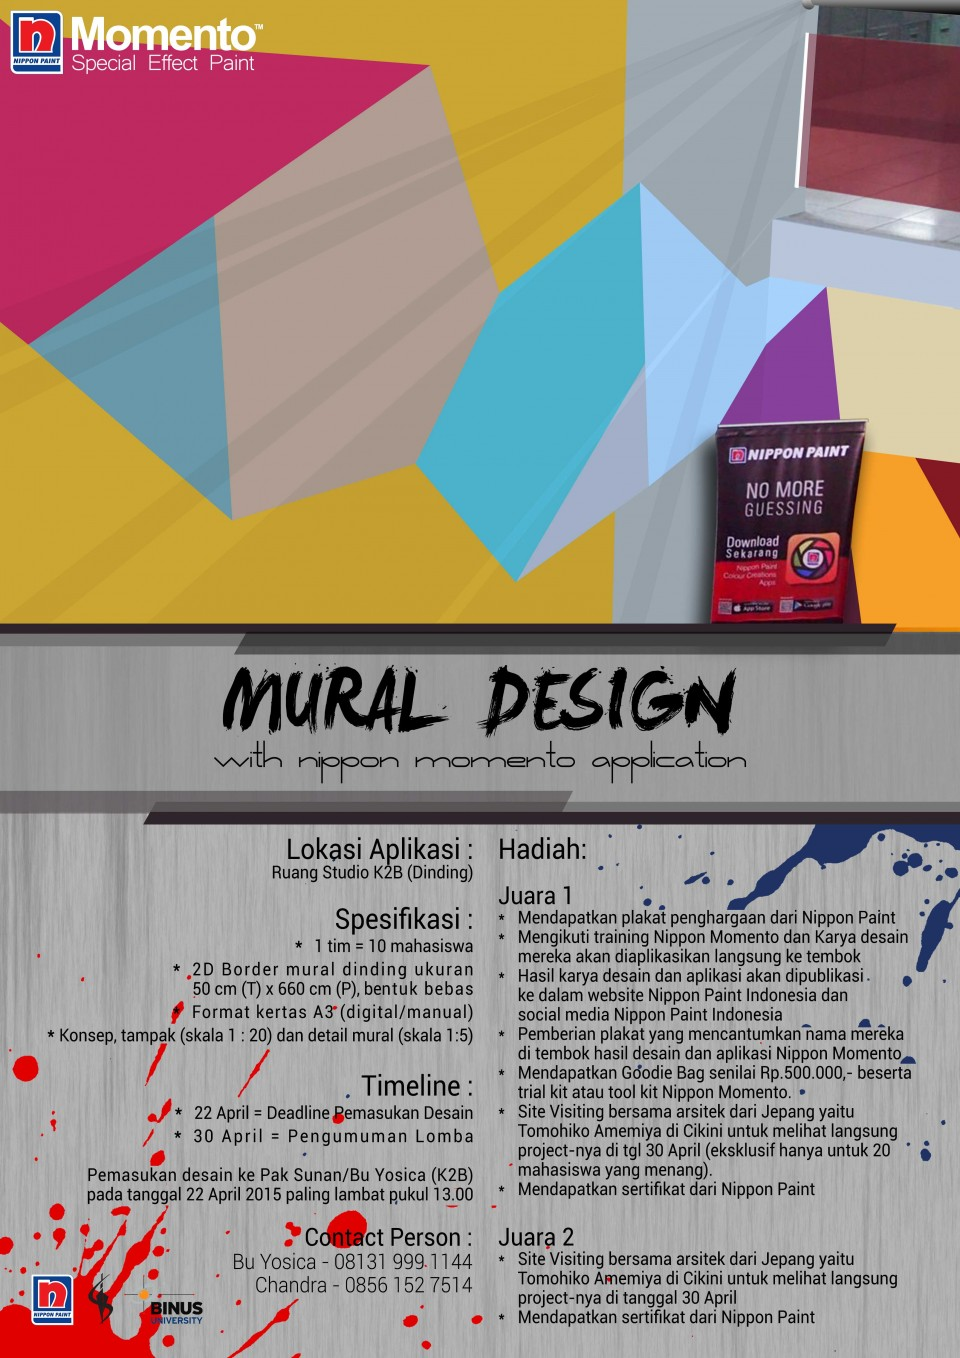 Mural Design with Nippon Momento Application